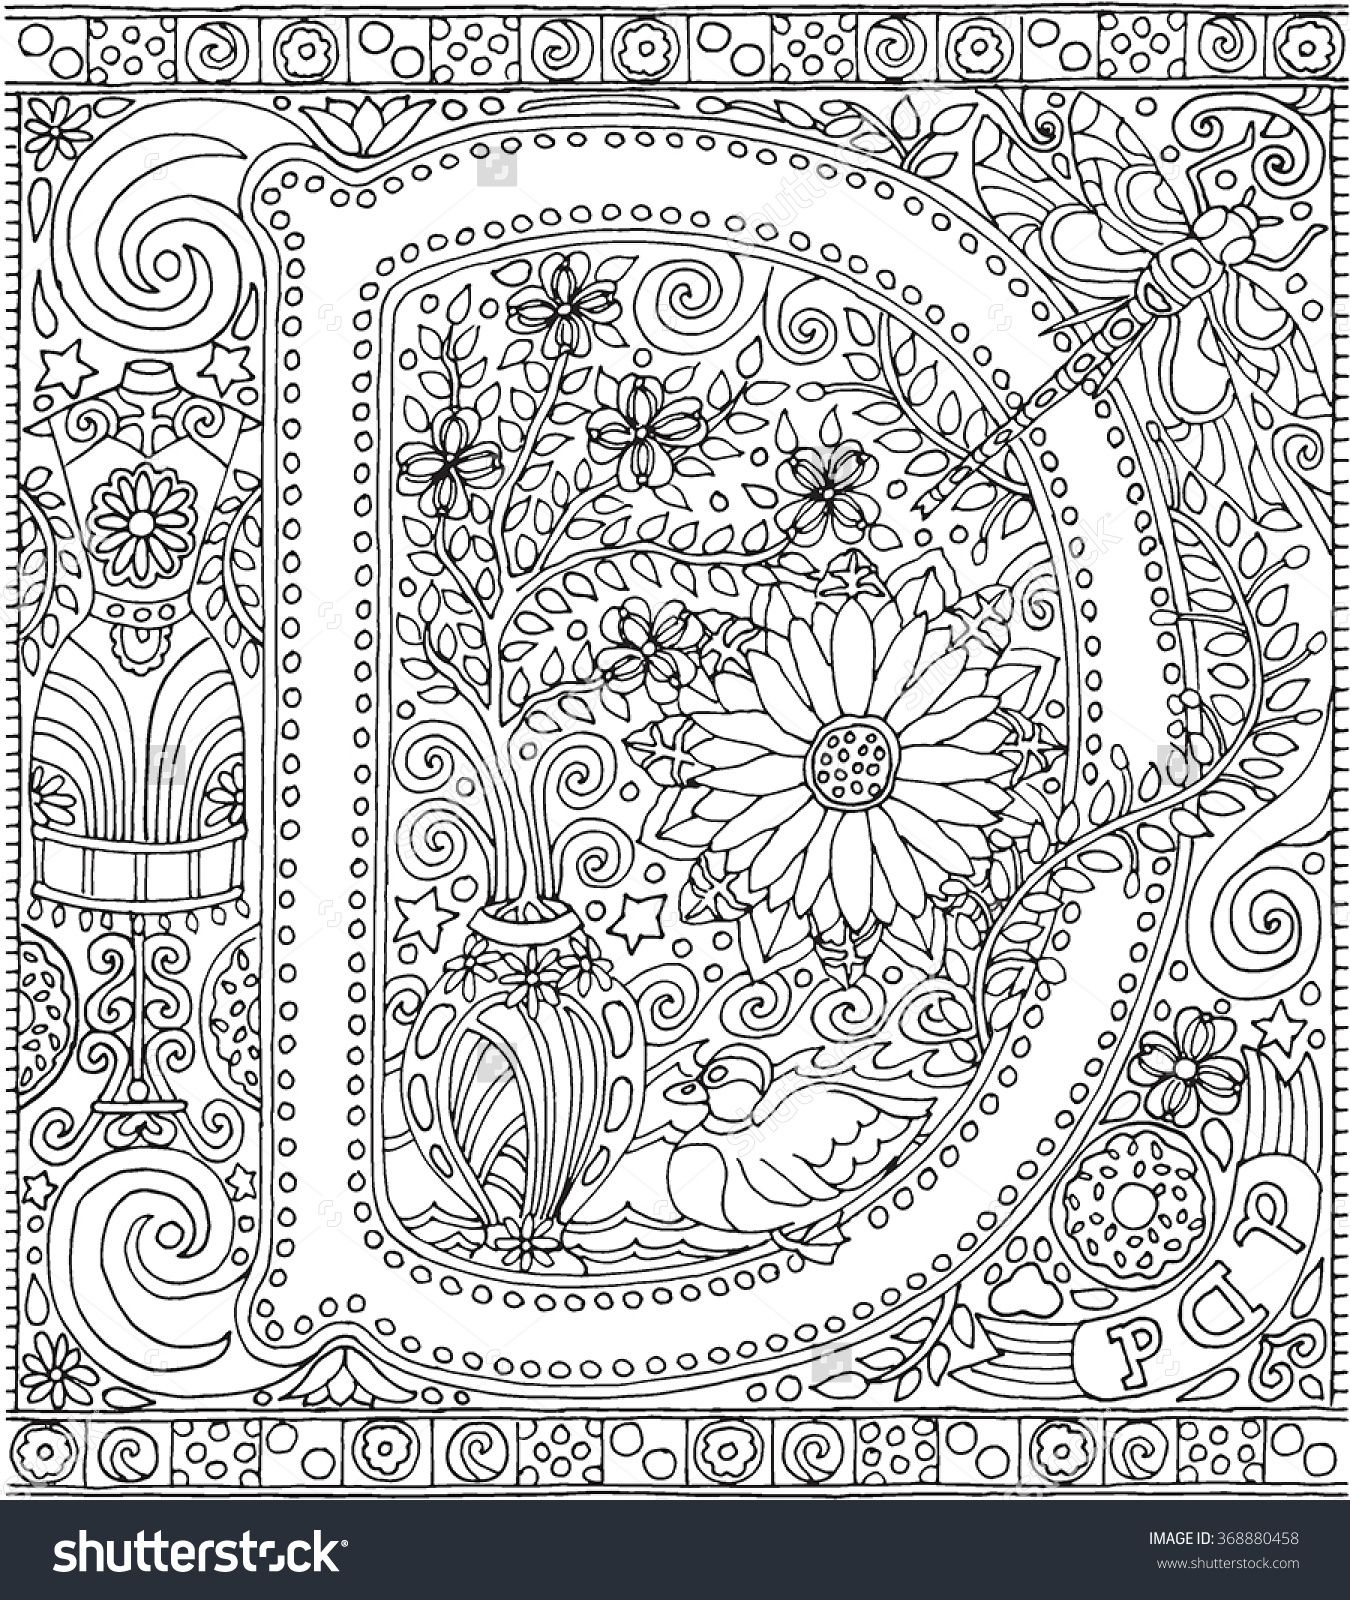 Coloring Pages For Adults Google Search Color Pages